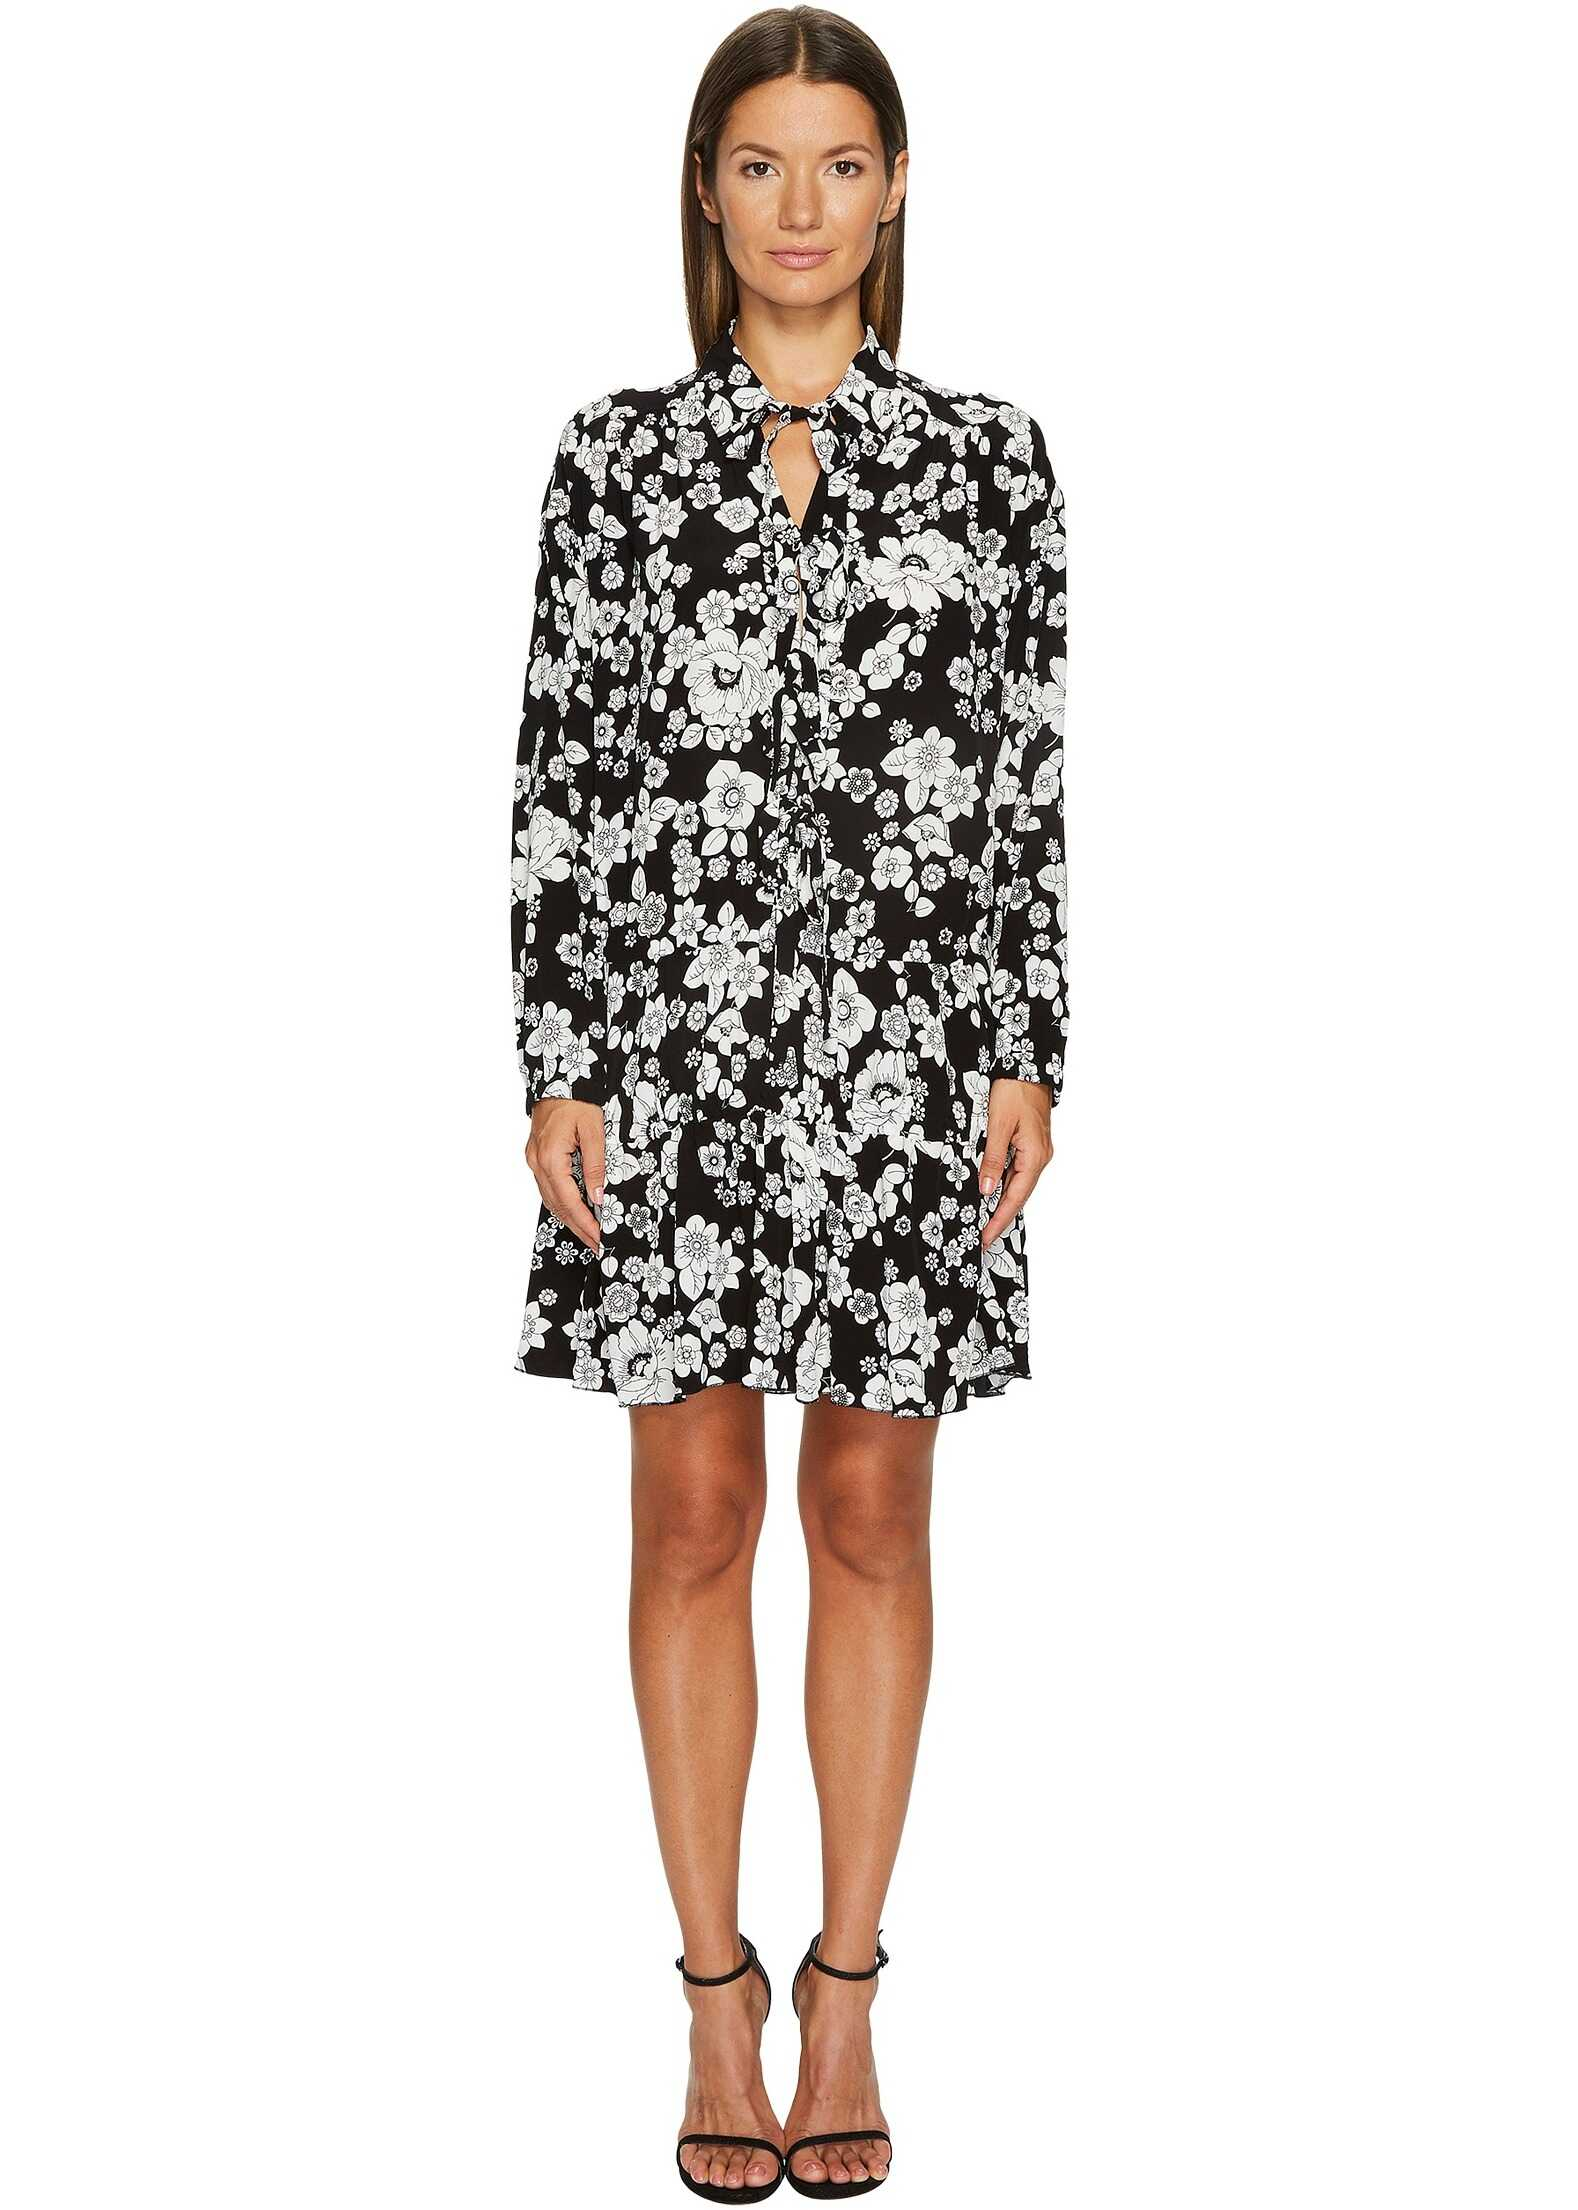 LOVE Moschino Long Sleeve Floral Dress Black/White